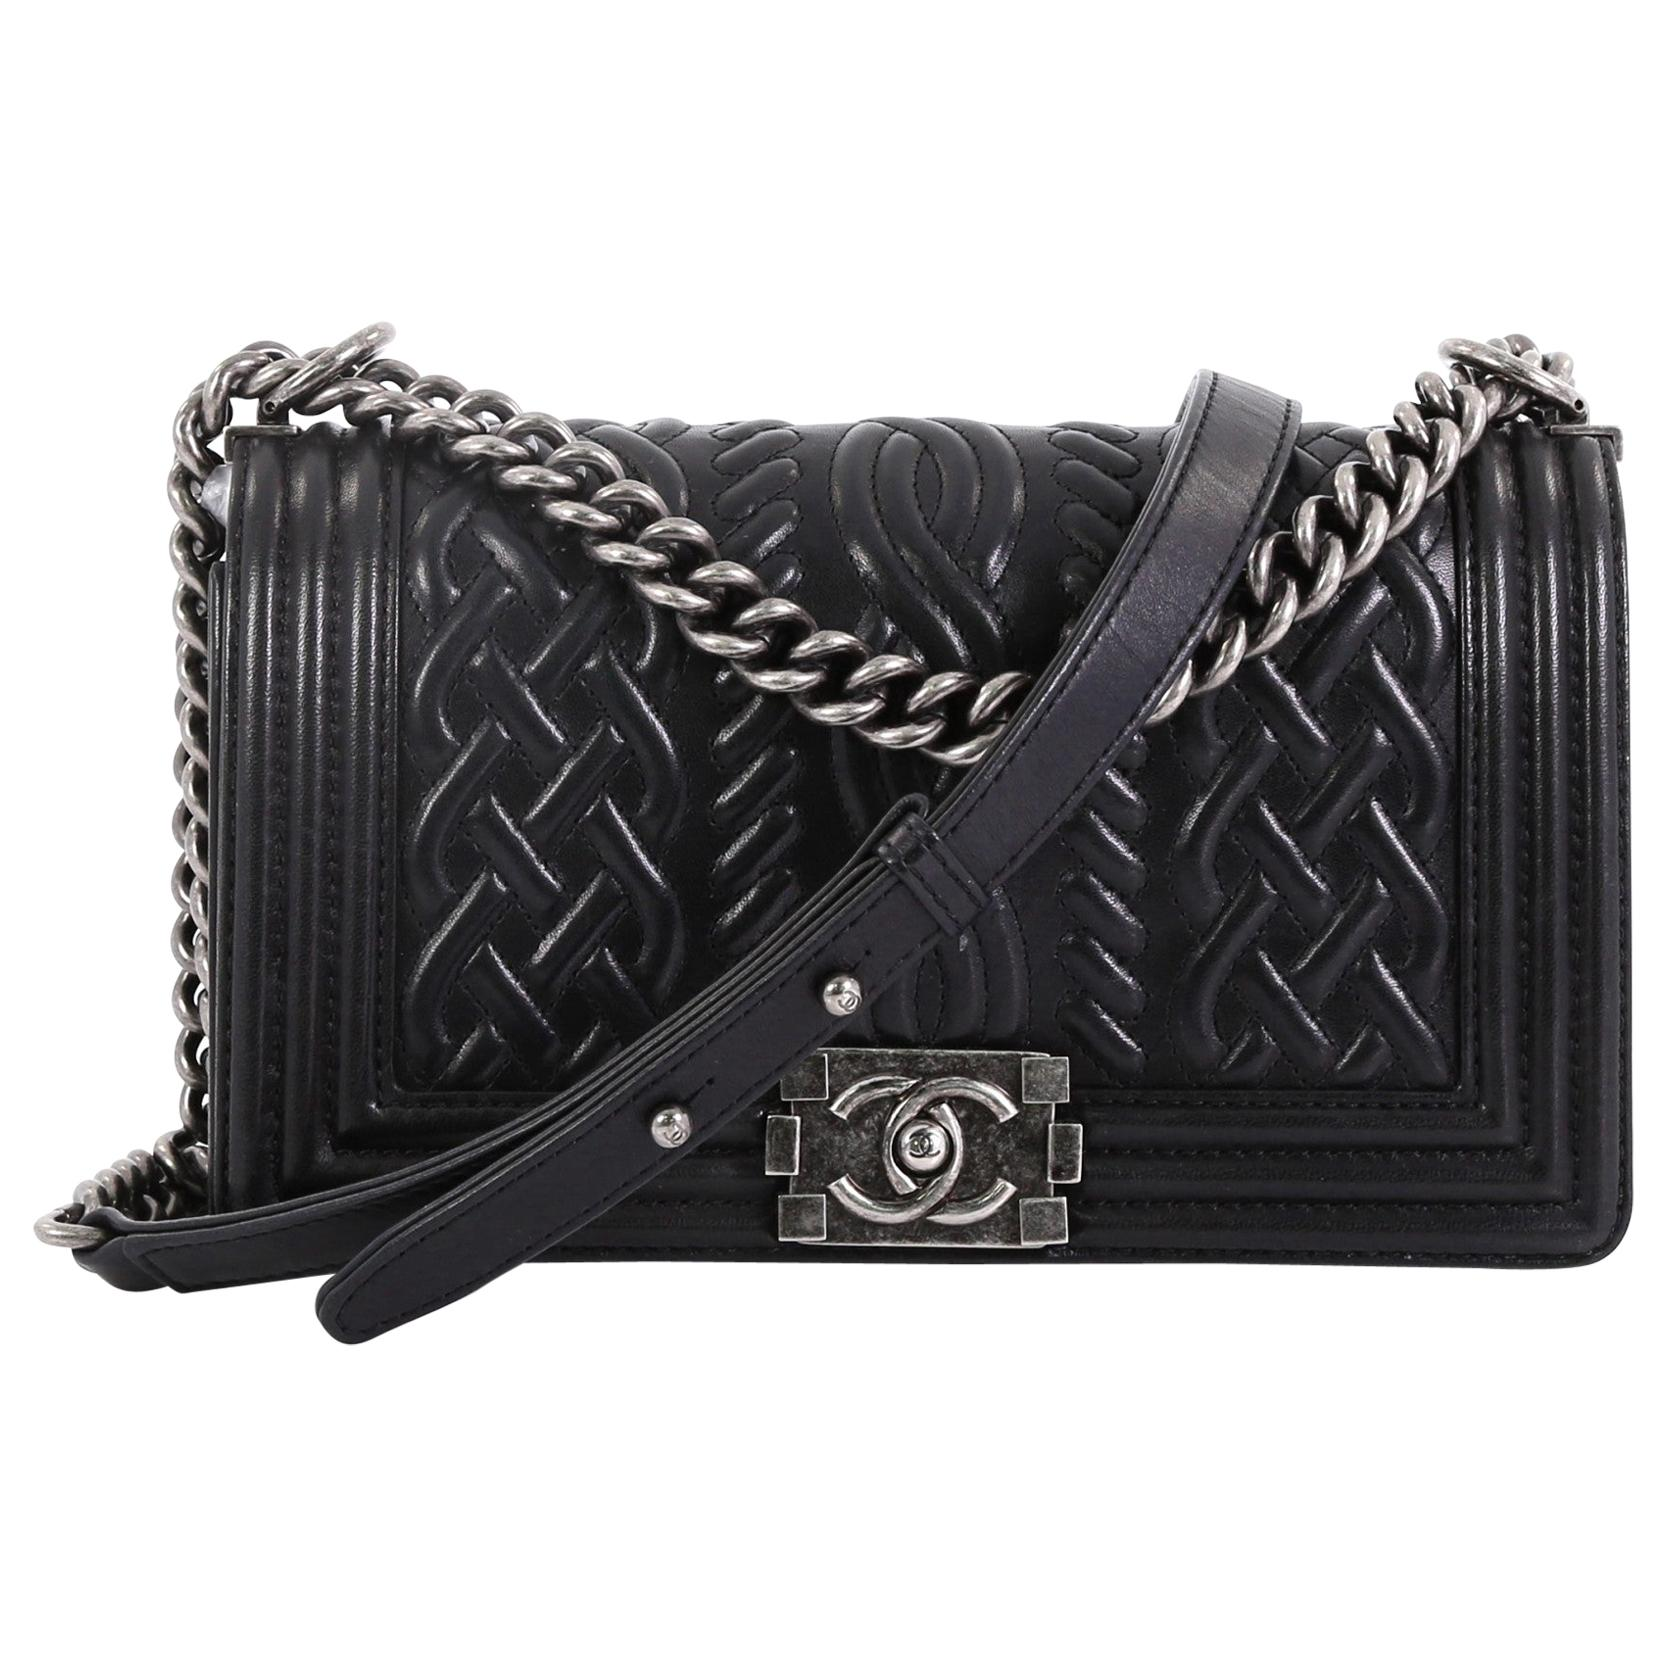 06e6861b6312 Chanel Boy Bags - 256 For Sale on 1stdibs